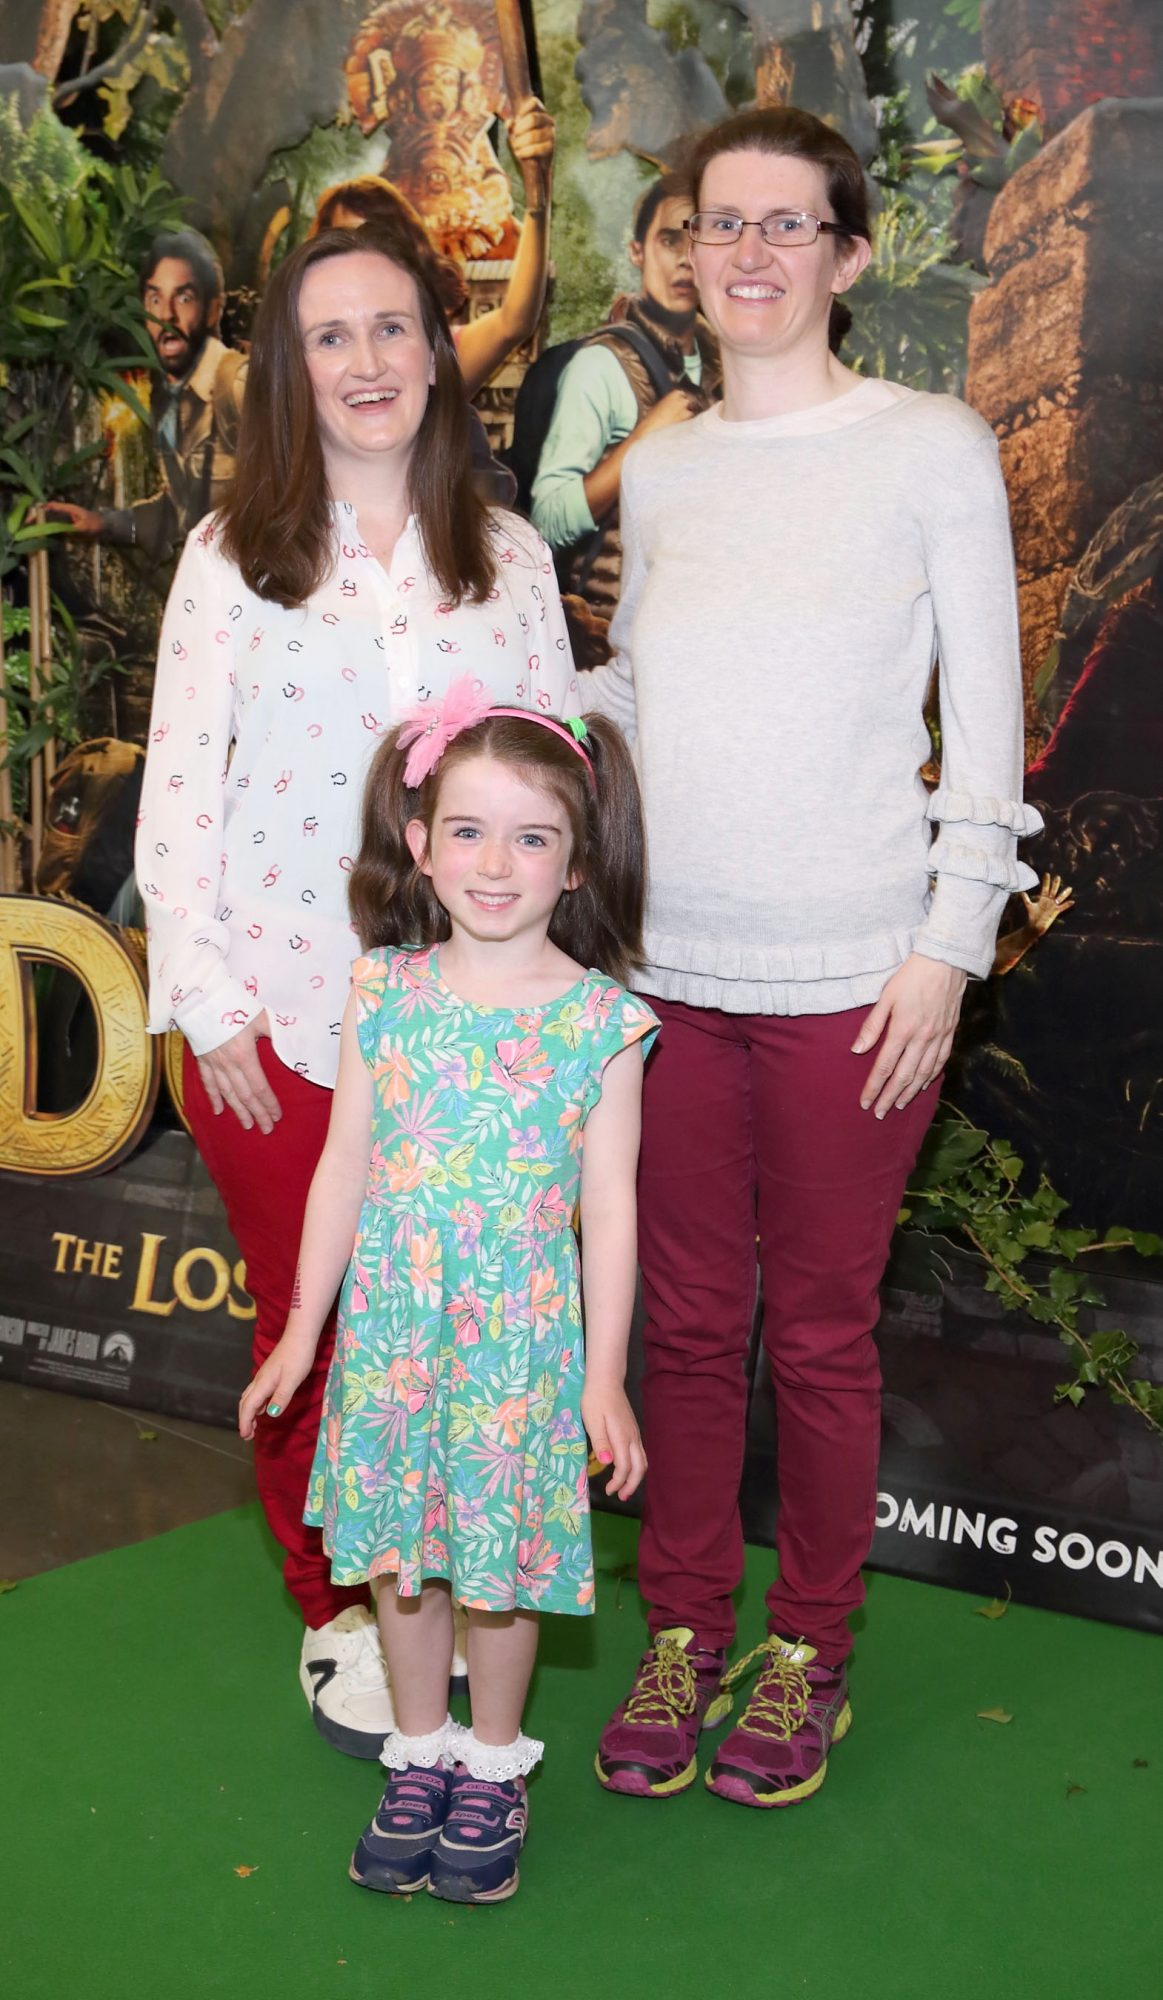 Michelle Monahan, Anne-Marie Gallagher and Saoirse Monahan at the special preview screening of Dora and the Lost City of Gold at the Odeon Cinema in Point Square,Dublin. Pic Brian McEvoy Photography